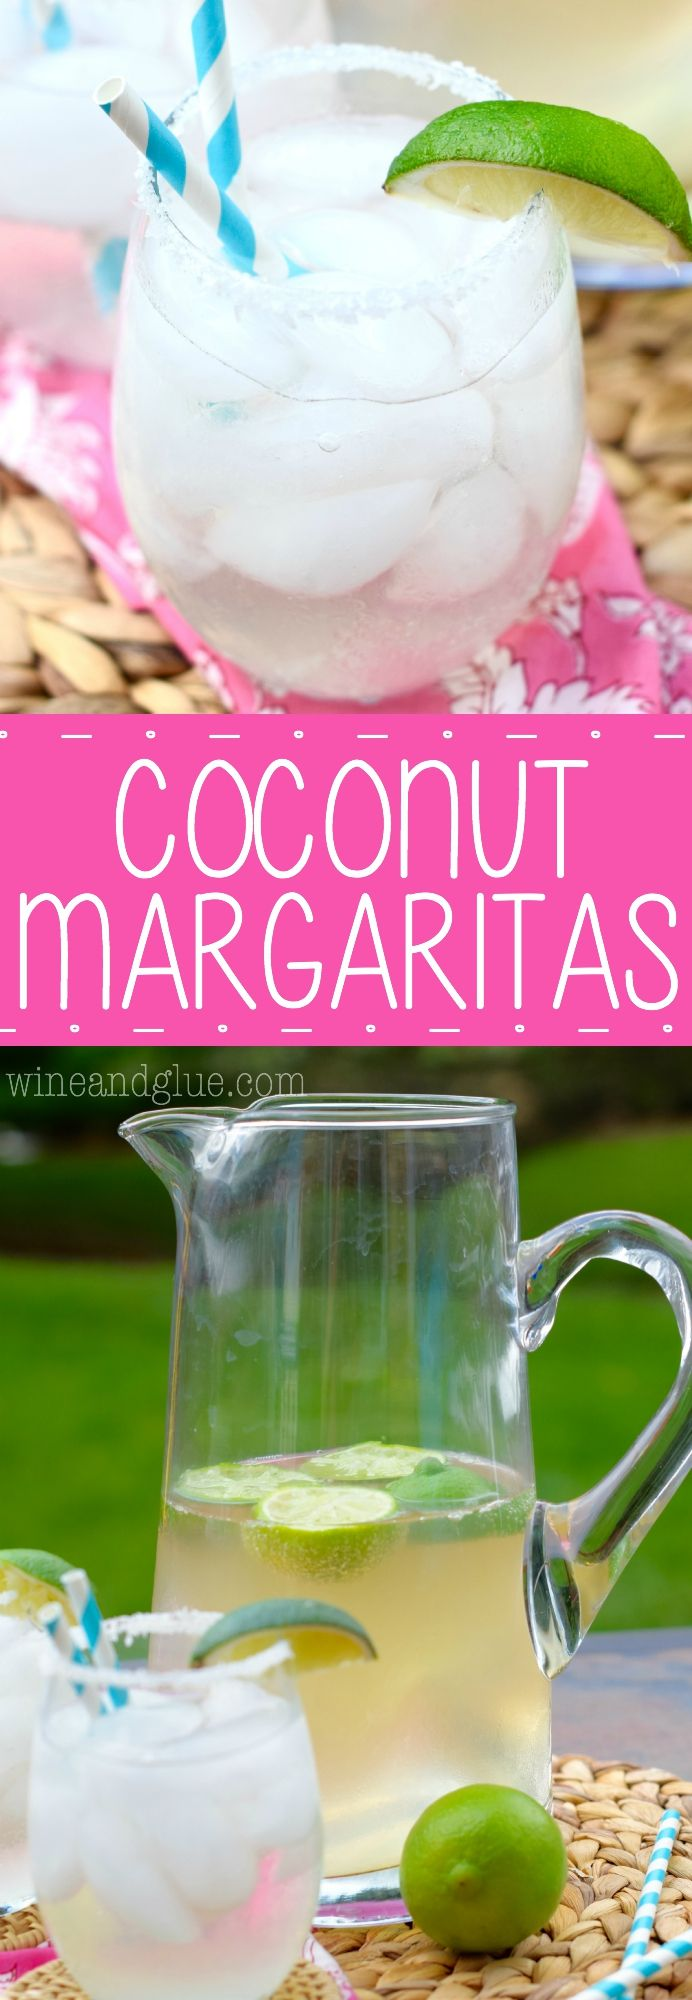 wholesale ladies Margaritas Coconut and Coconut   Coconut Margarita  for Margarita shoes Recipe